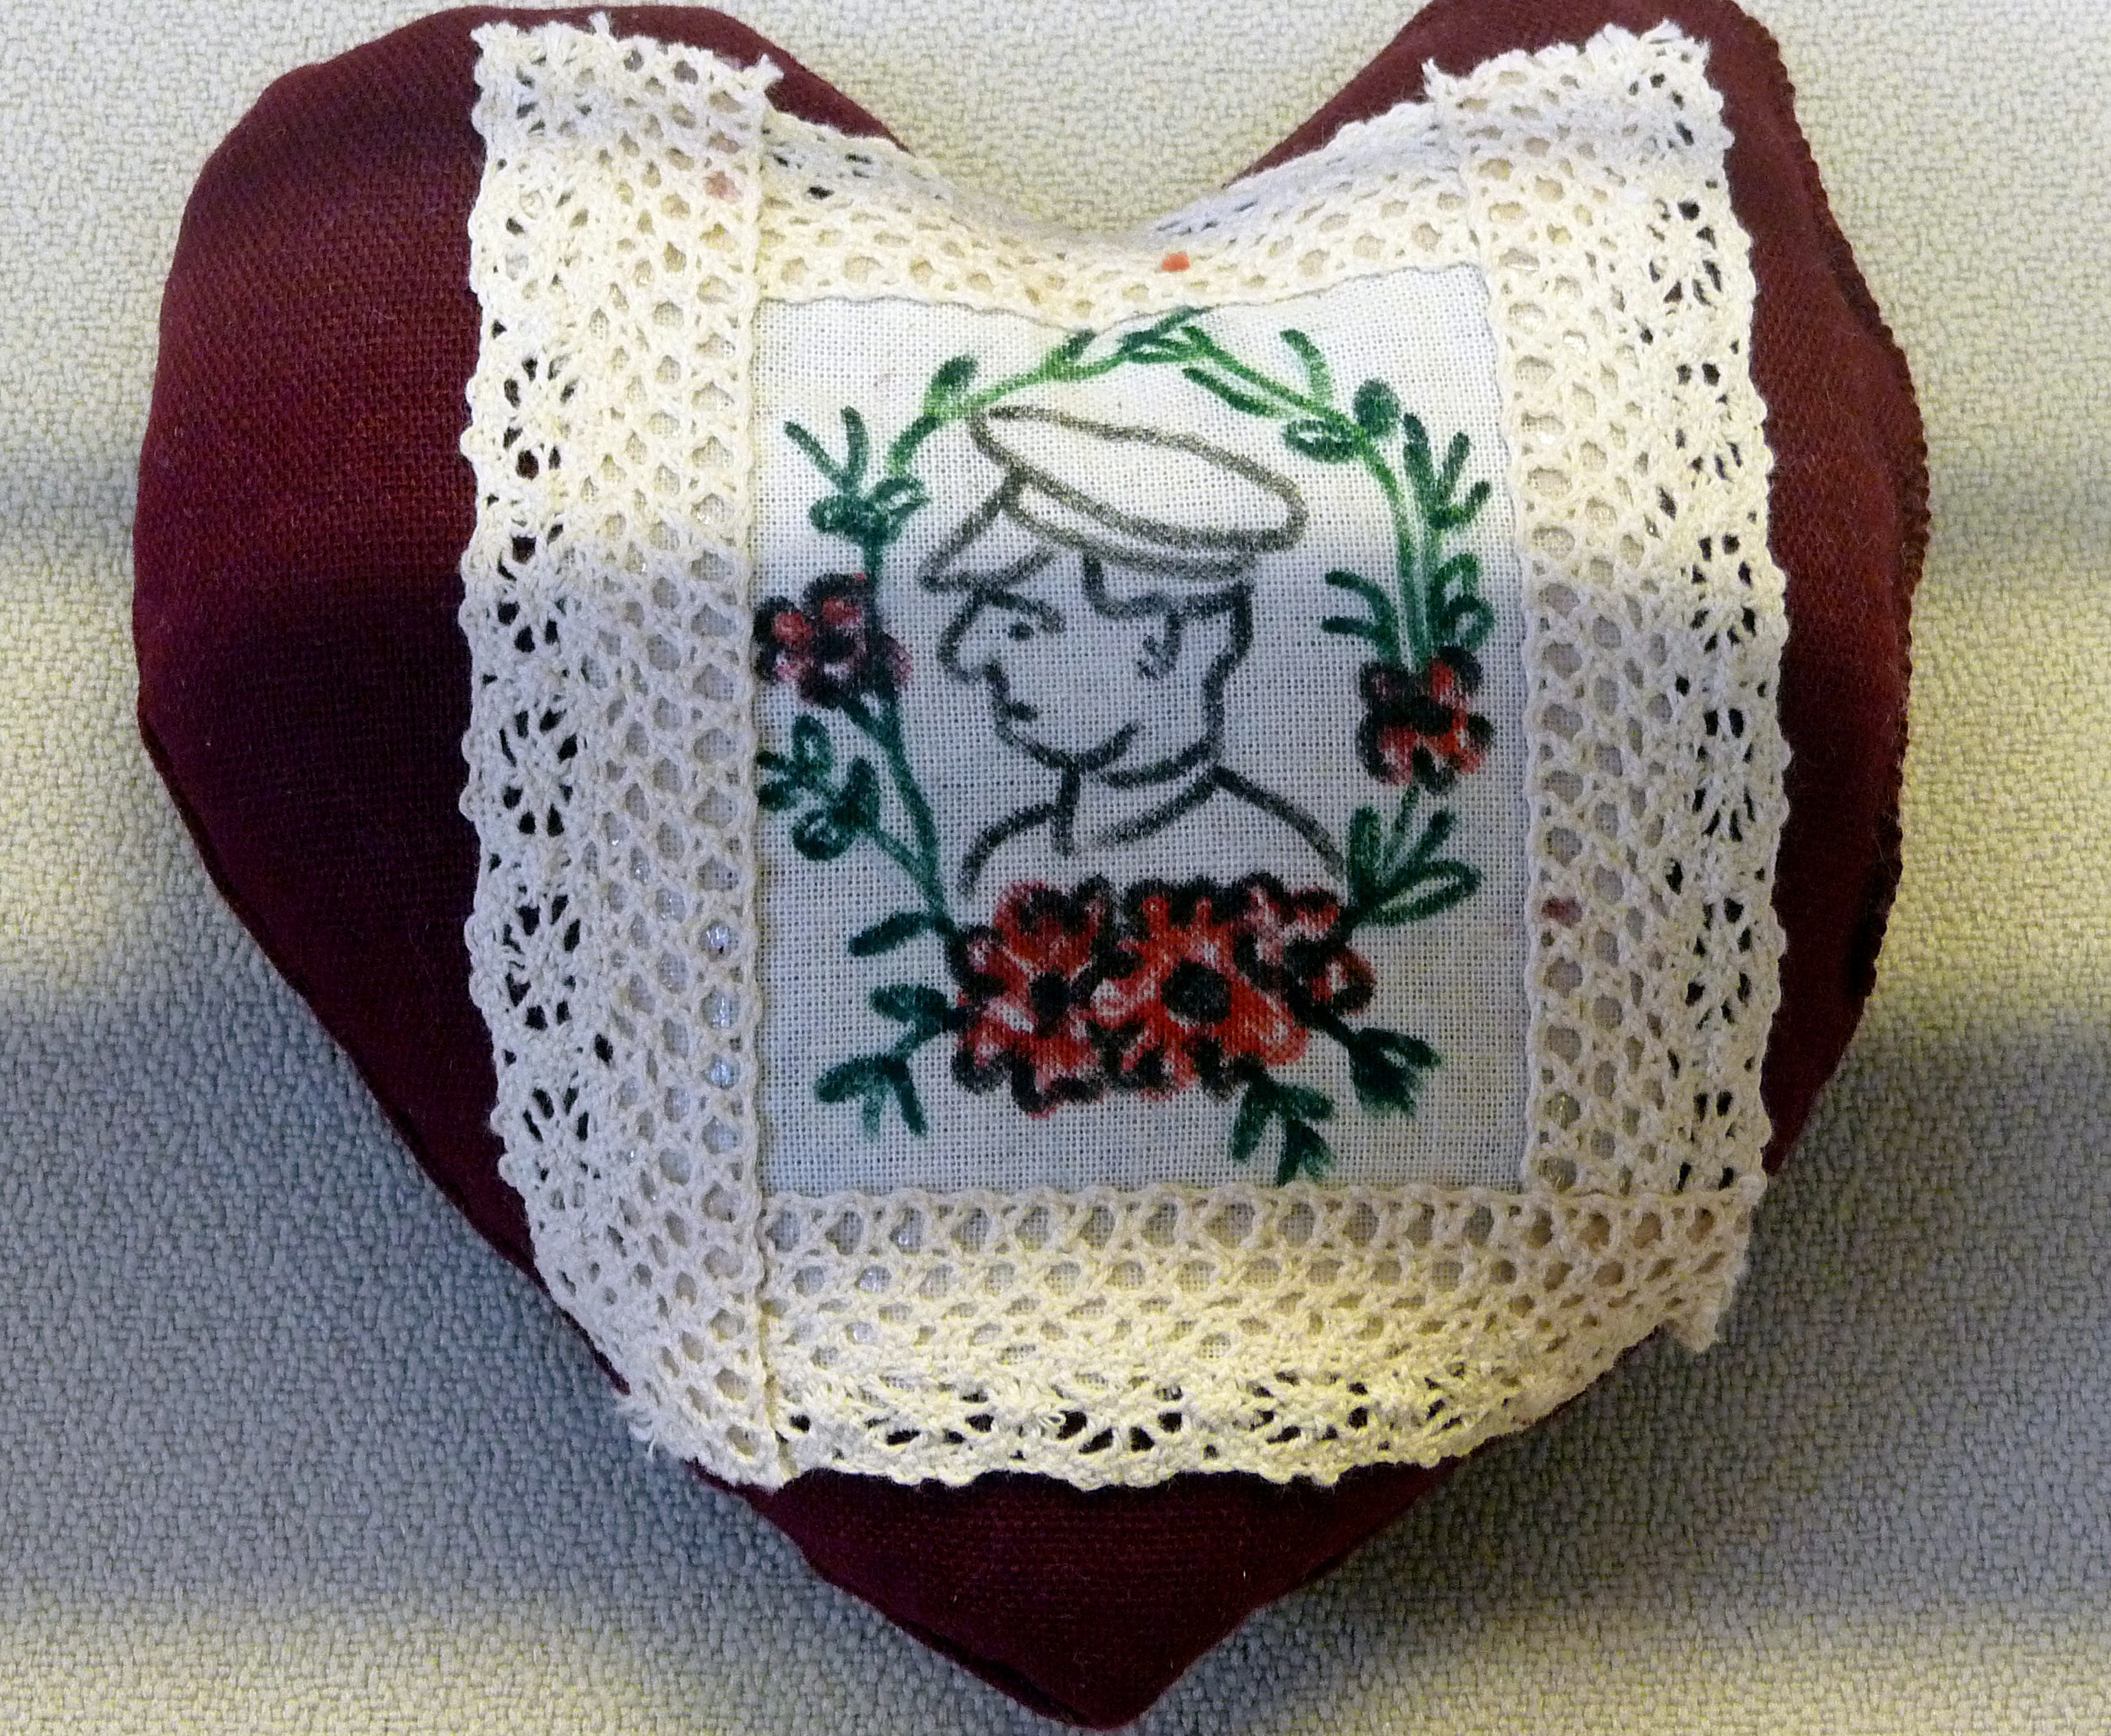 pincushion to commemorate World War 1  made by The Kilbane Family